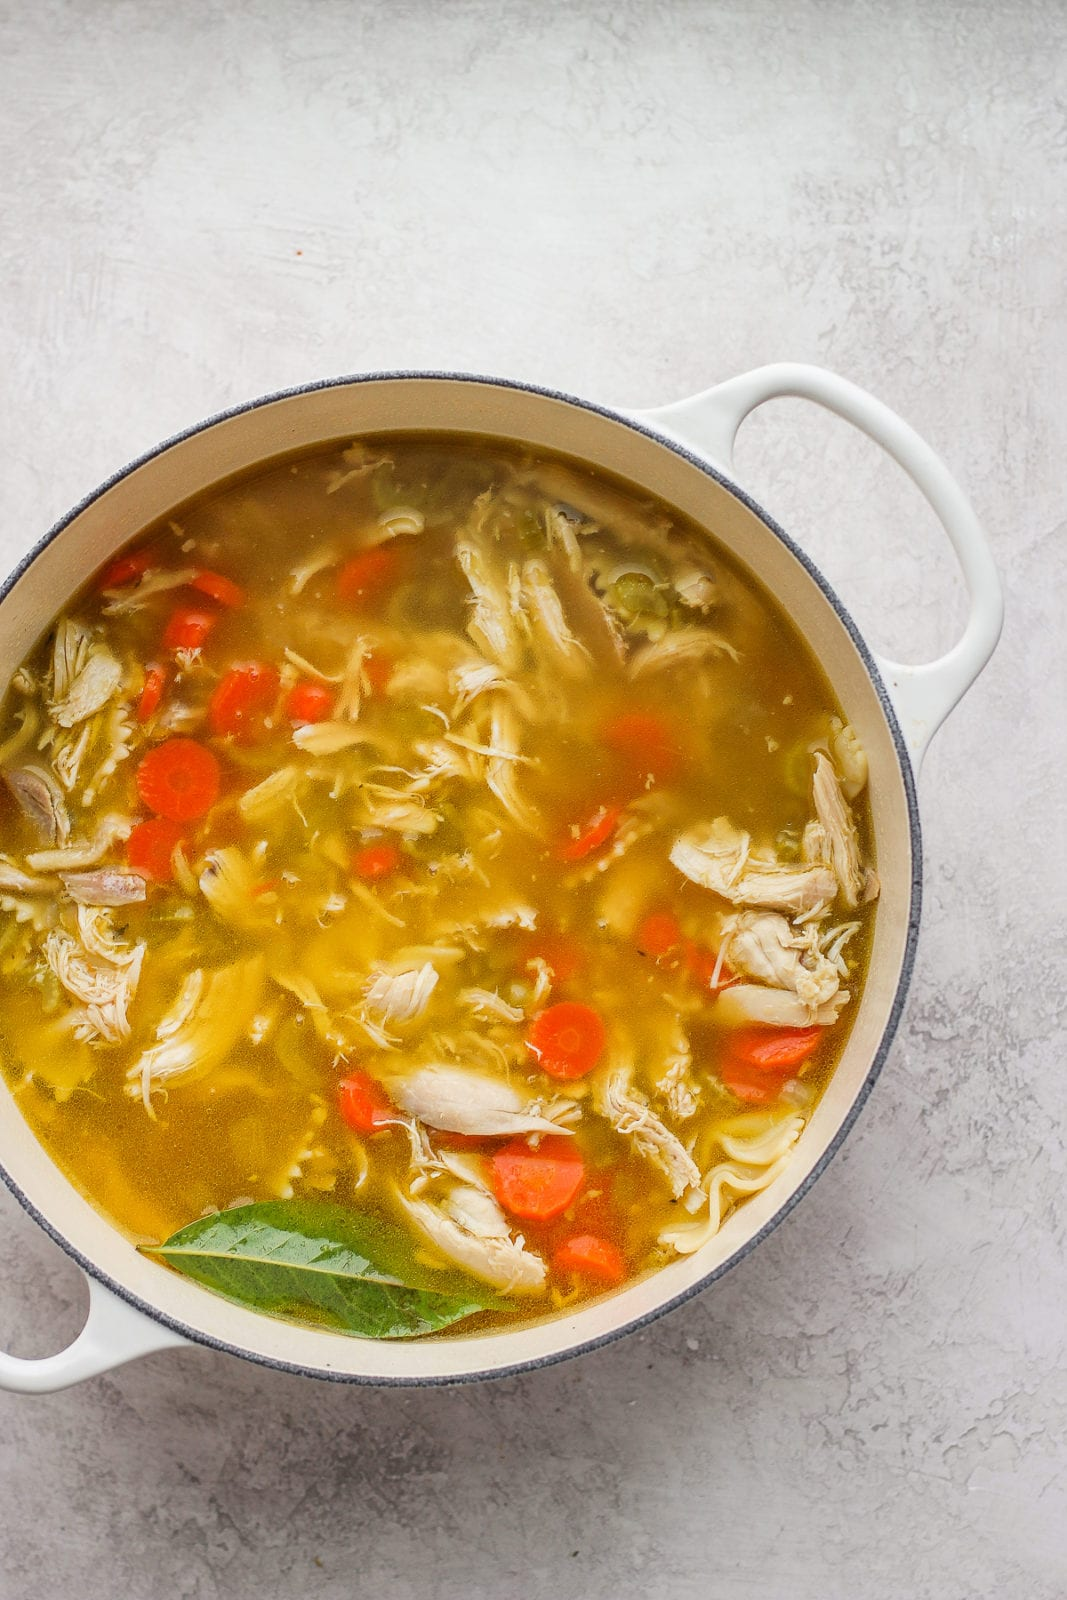 Sunday Afternoon Roasted Chicken Soup - roast your chicken first if you want to make the BEST homemade chicken soup EVER!! #homemadechickensoup #thebestchickensouprecipe #chickennoodlesoup #whole30soup #whole30recipes #paleorecipes #coldseason #wintersoup #coldremedies